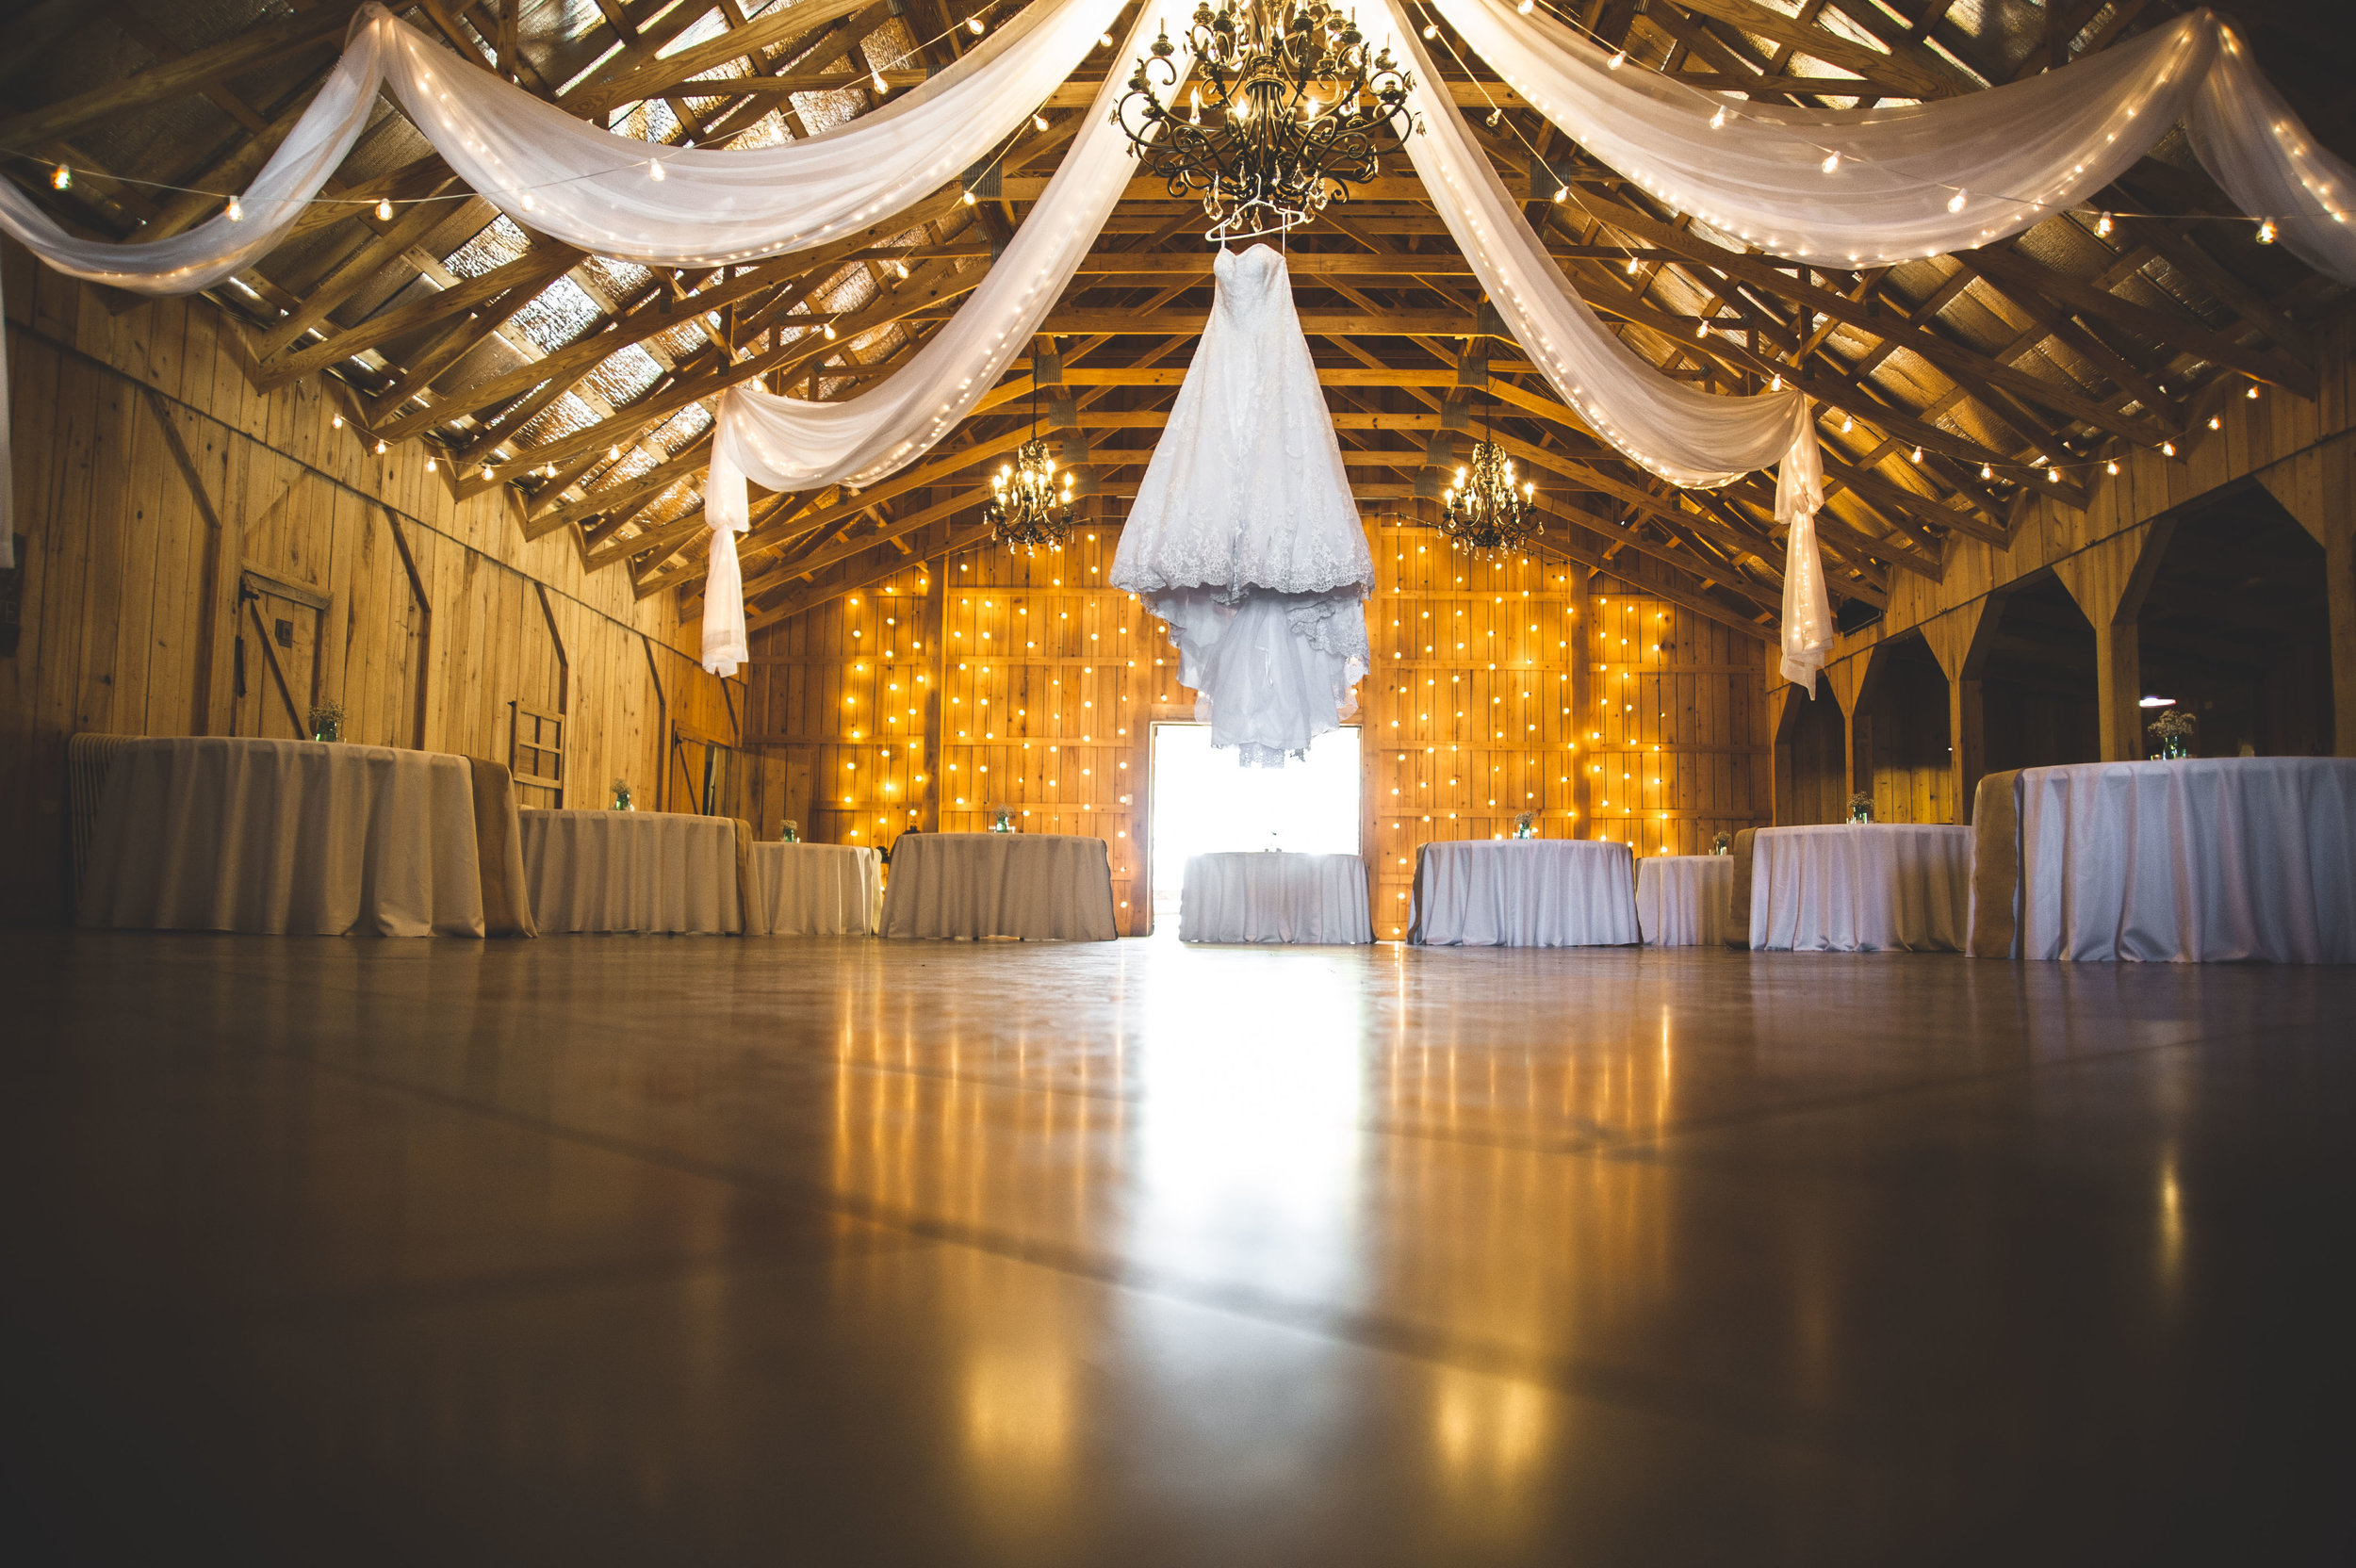 Dance Floor Size Recommendations -